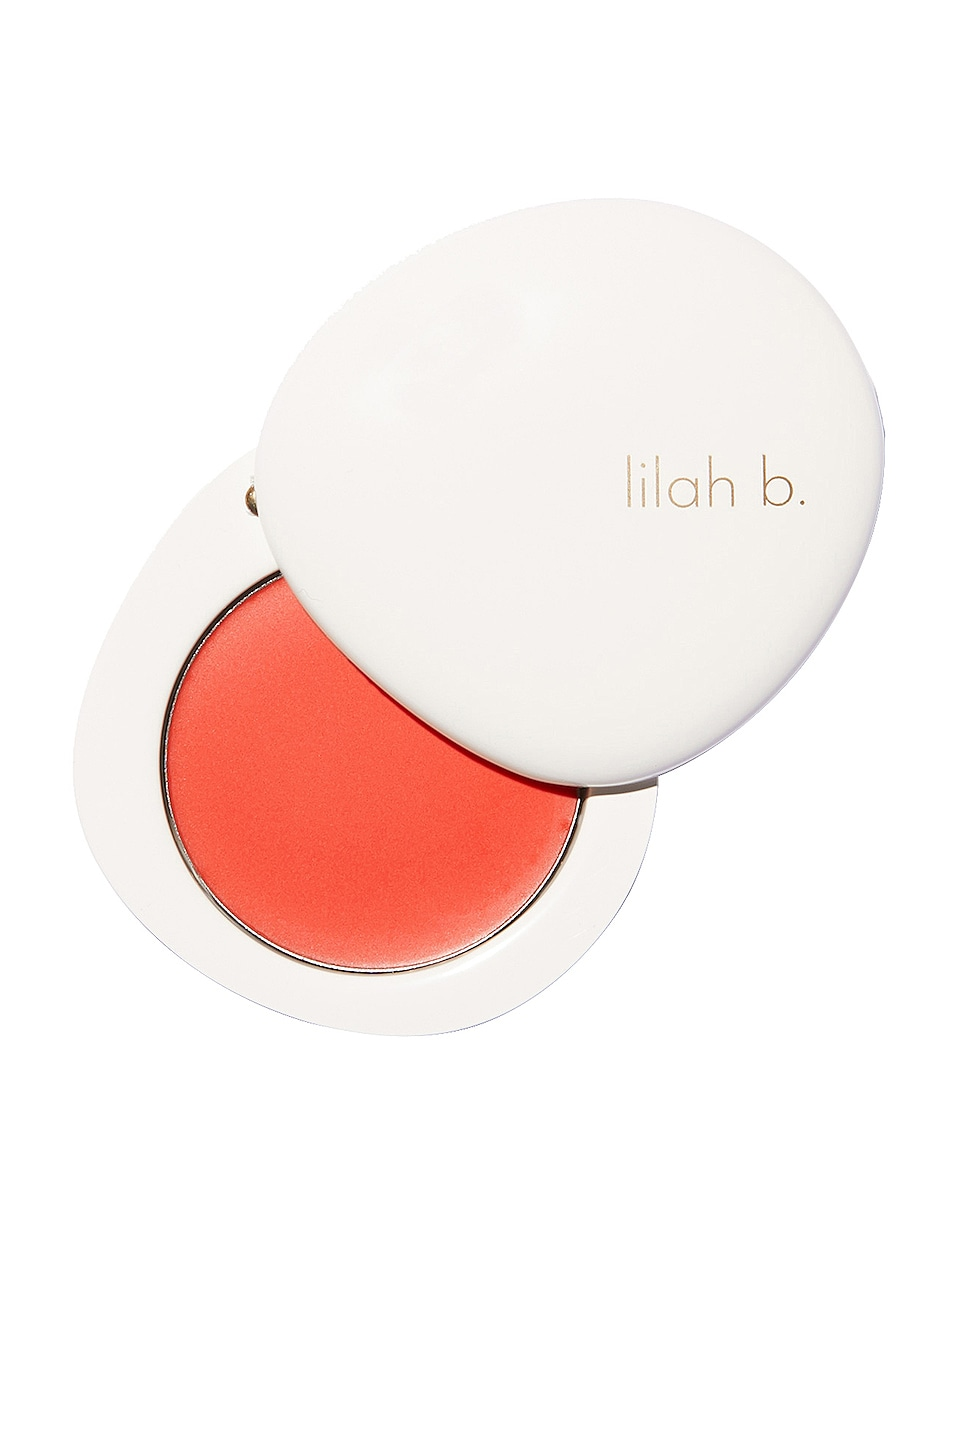 lilah b. Tinted Lip Balm in b. cheeky